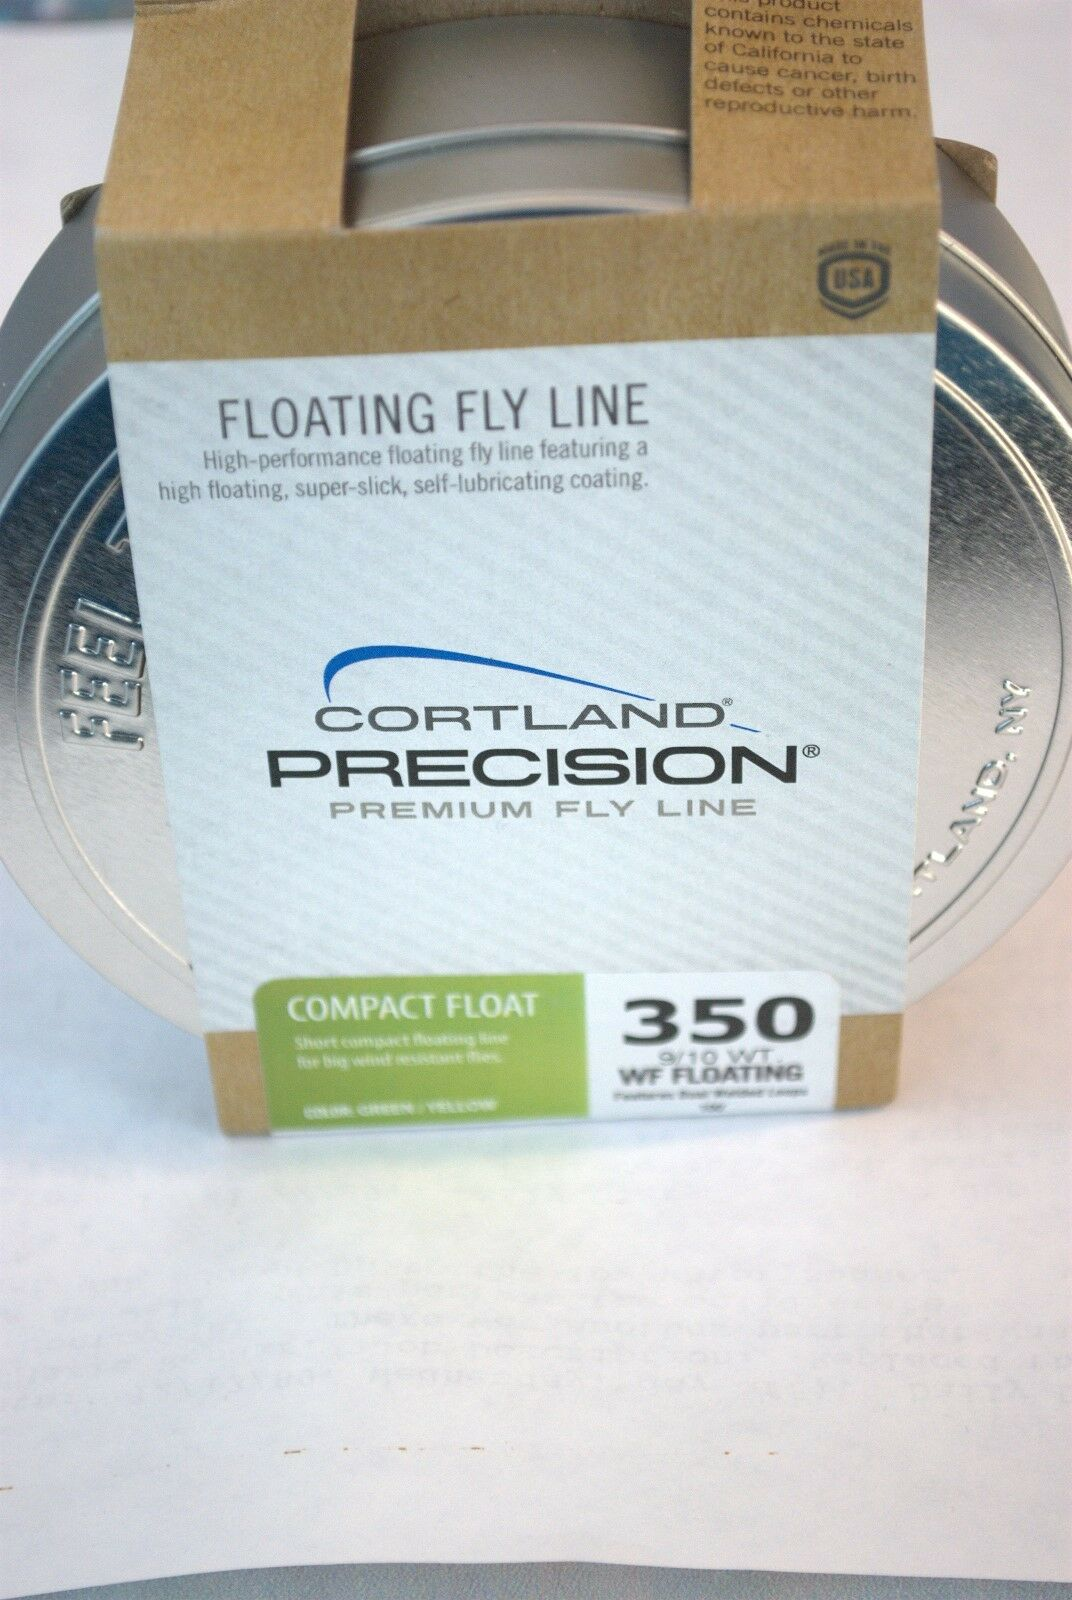 Cortle Precision Premium Fly Line Compact Float 910 Weight